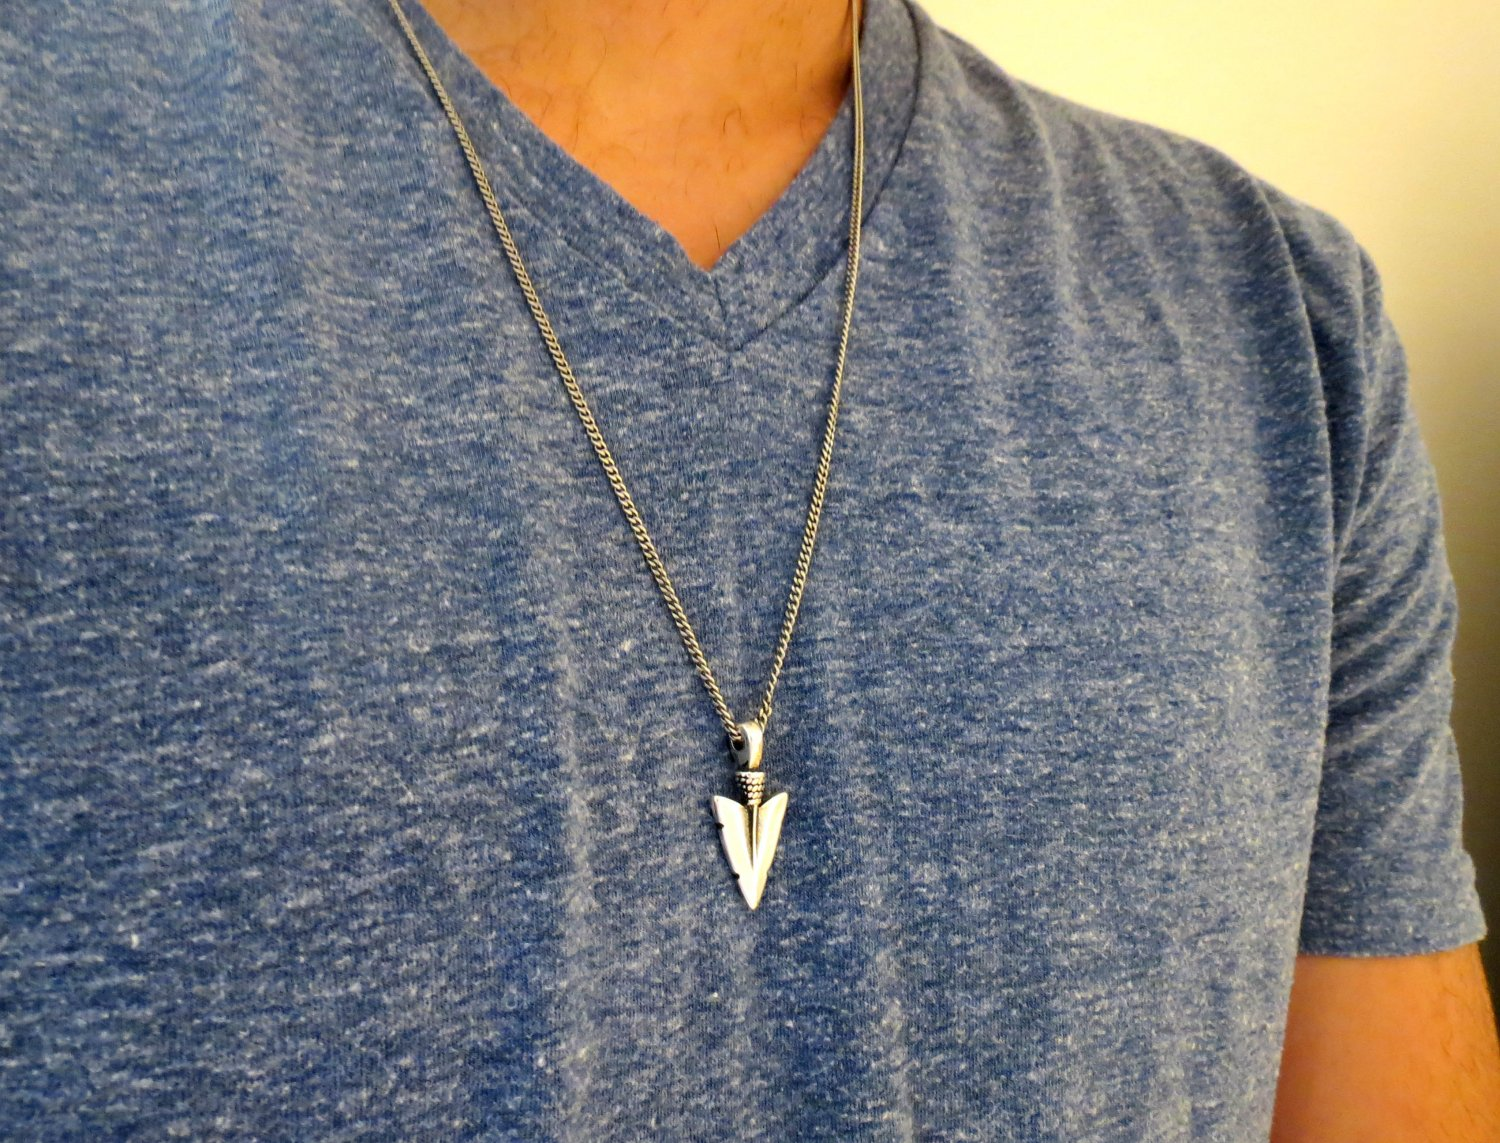 Men's Necklace - Men's Spear Necklace - Men's Silver Necklace - Mens Jewelry